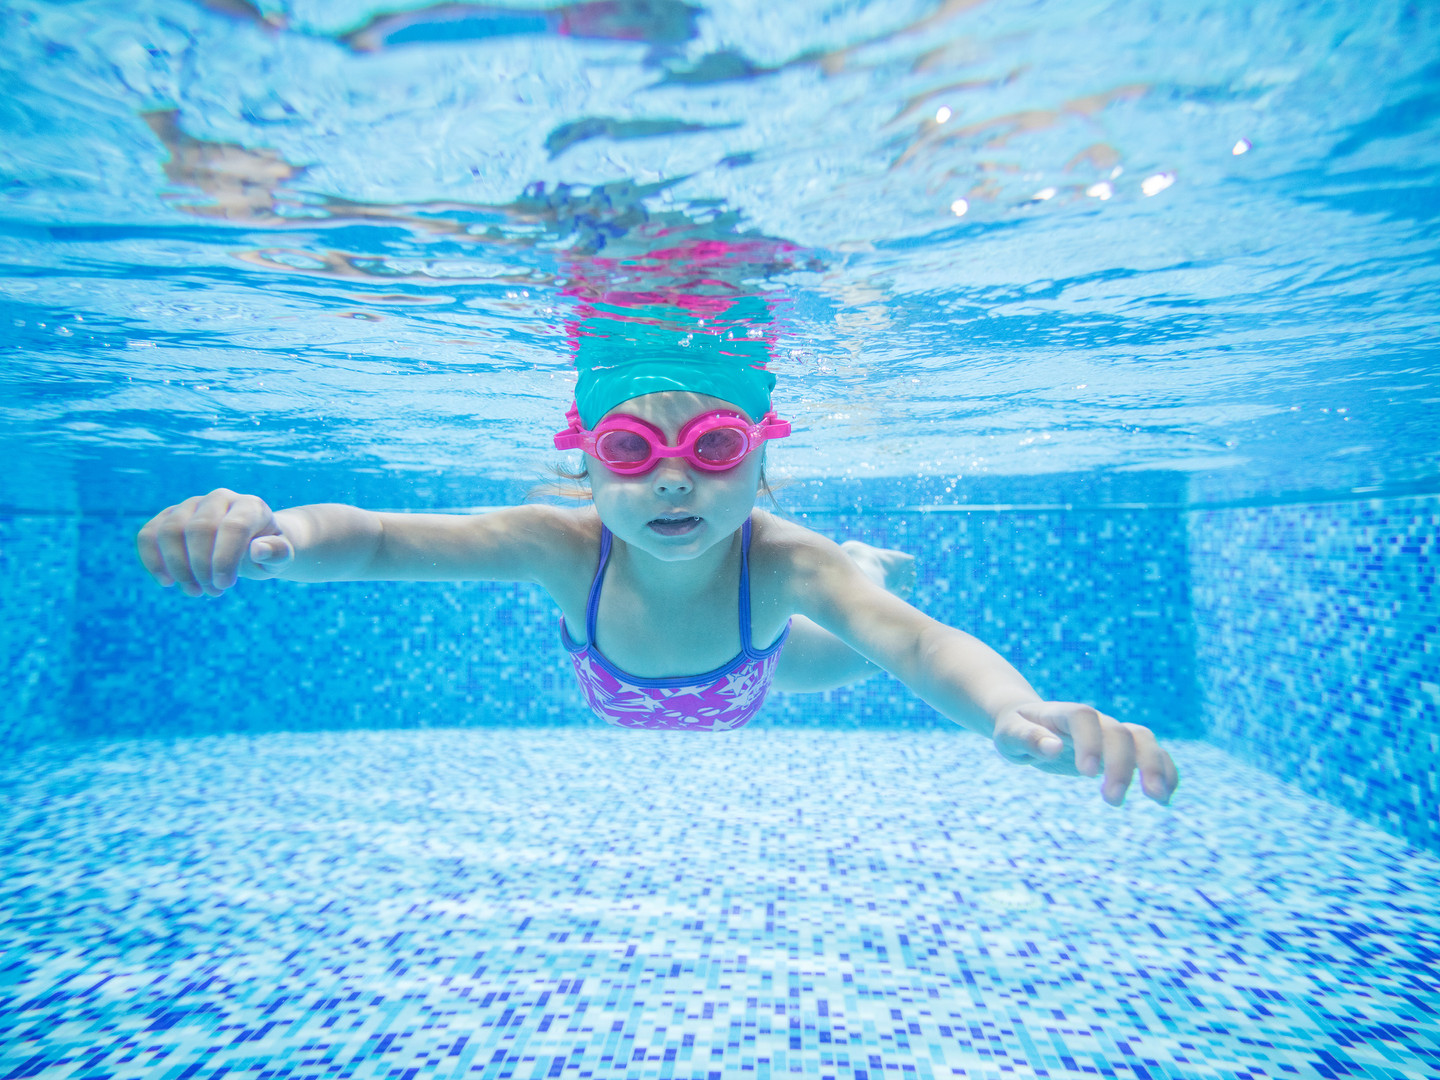 little-girl-diving-in-swimming-pool-P5NR